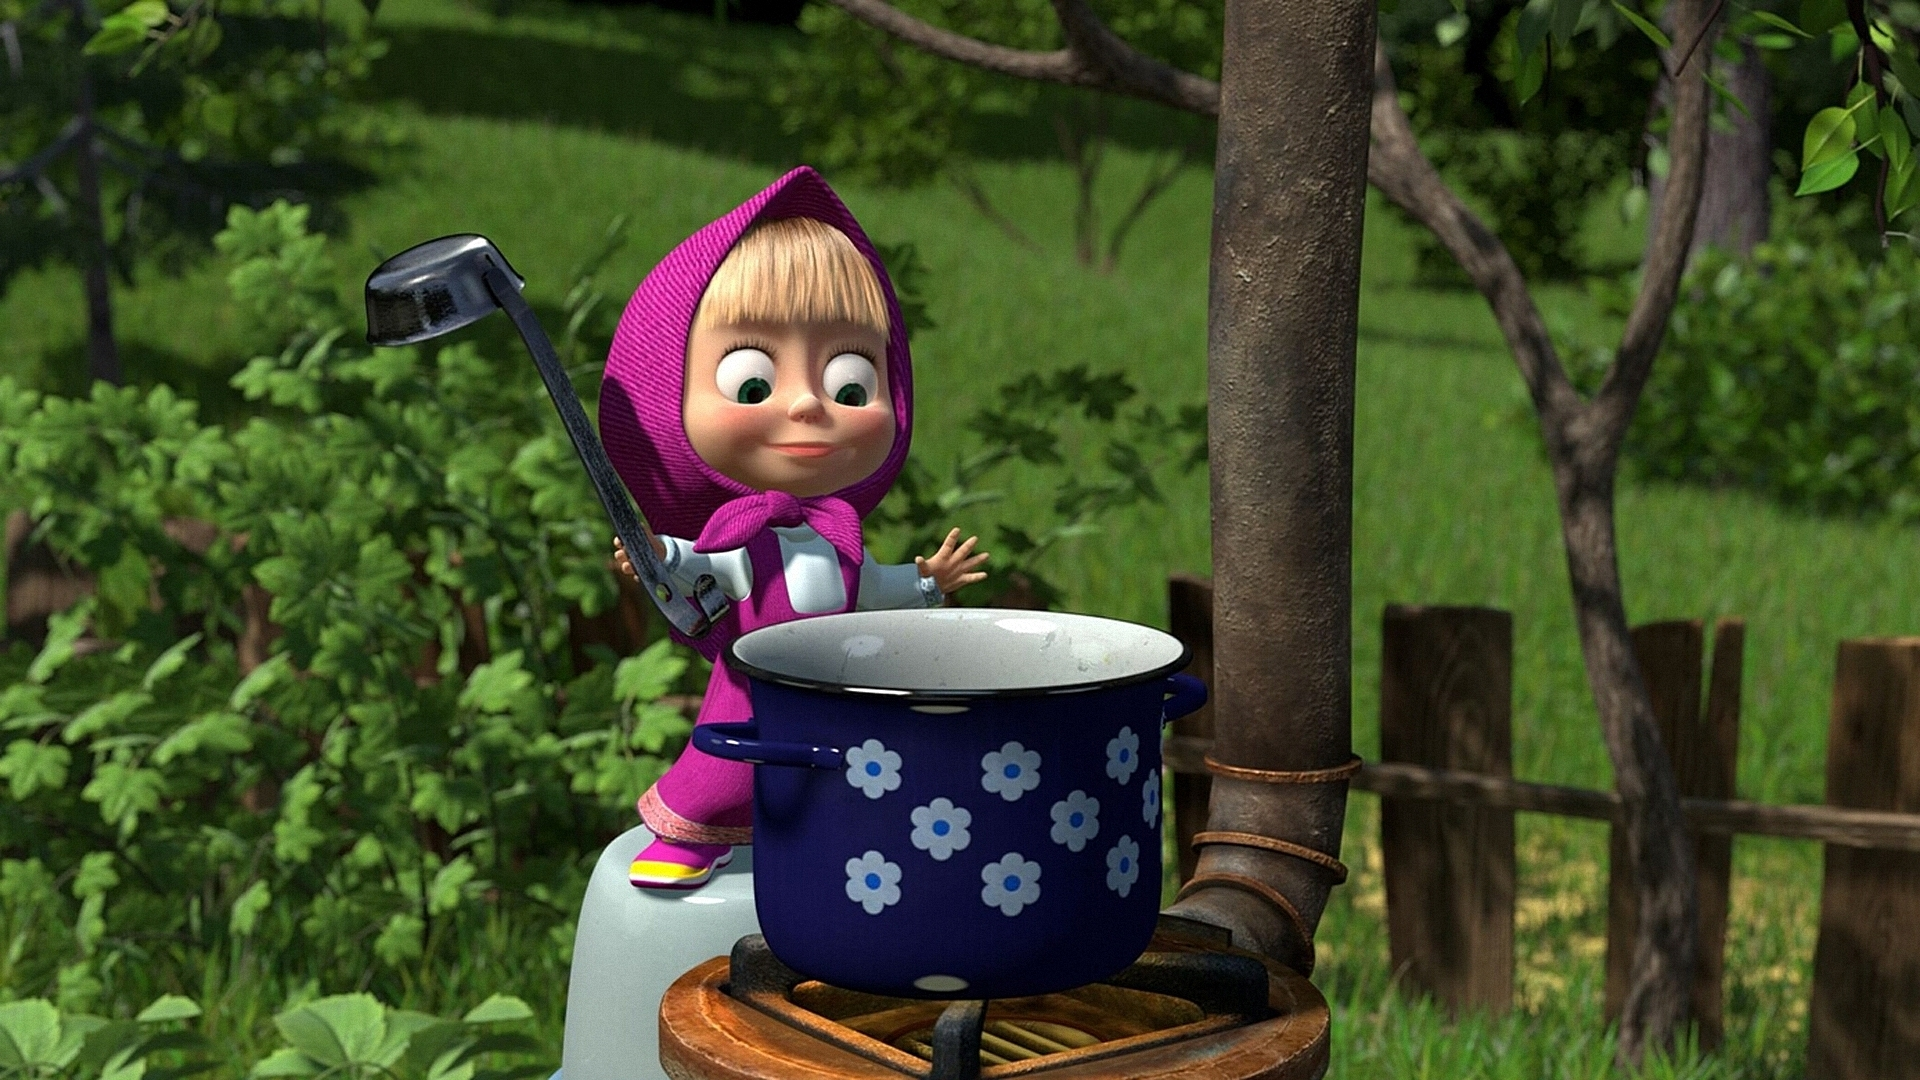 Masha And The Bear Computer Wallpapers, Desktop Backgrounds